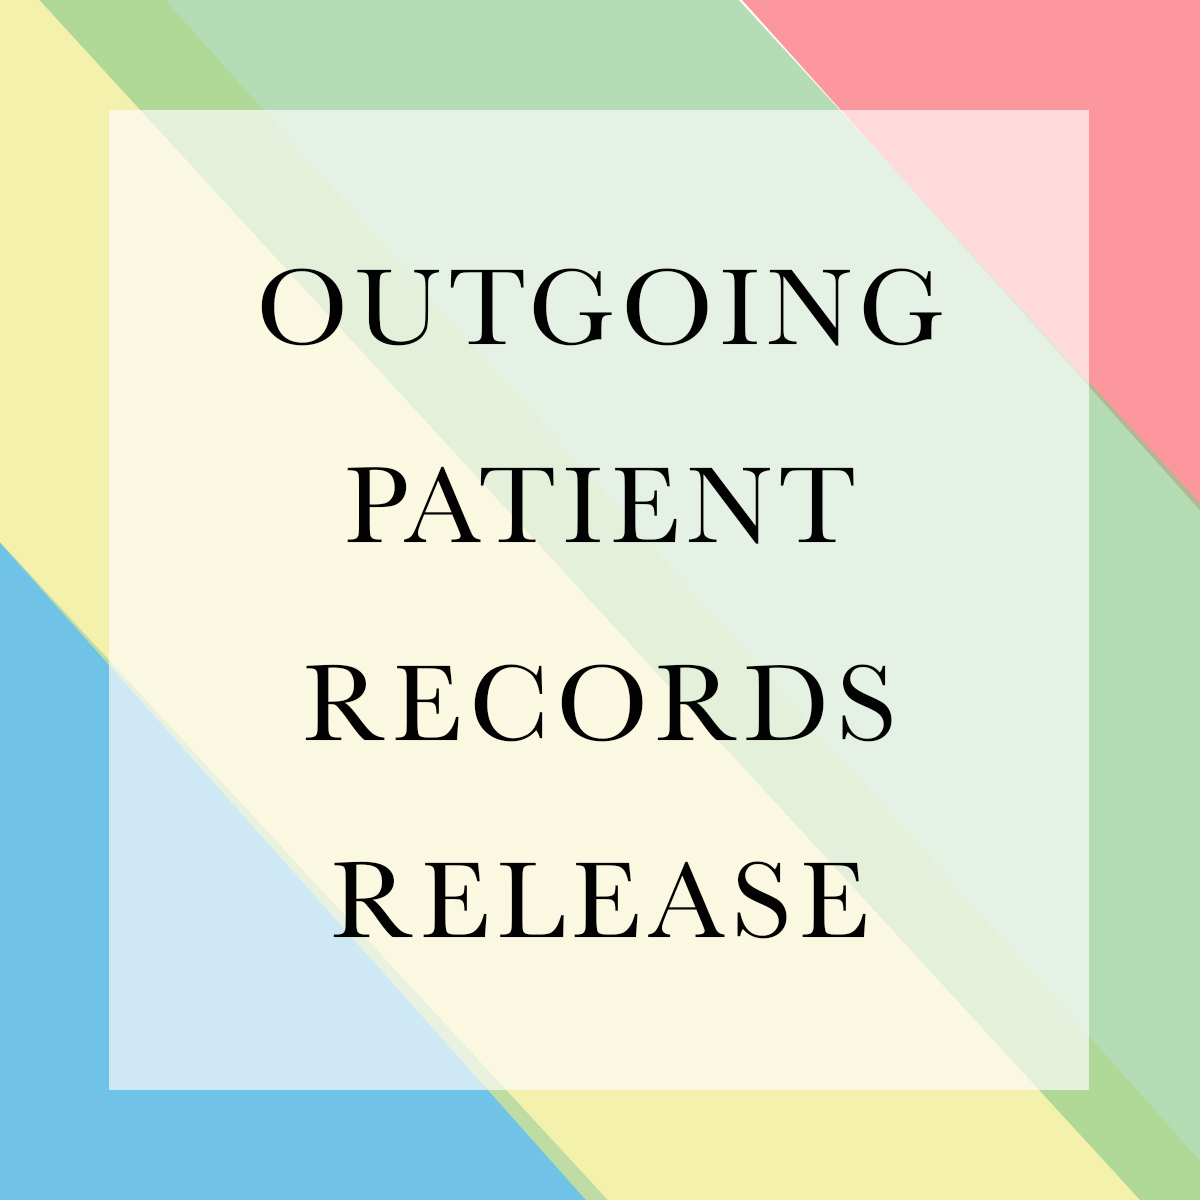 OUTGOING PATIENTS RECORDS RELEASE.jpg